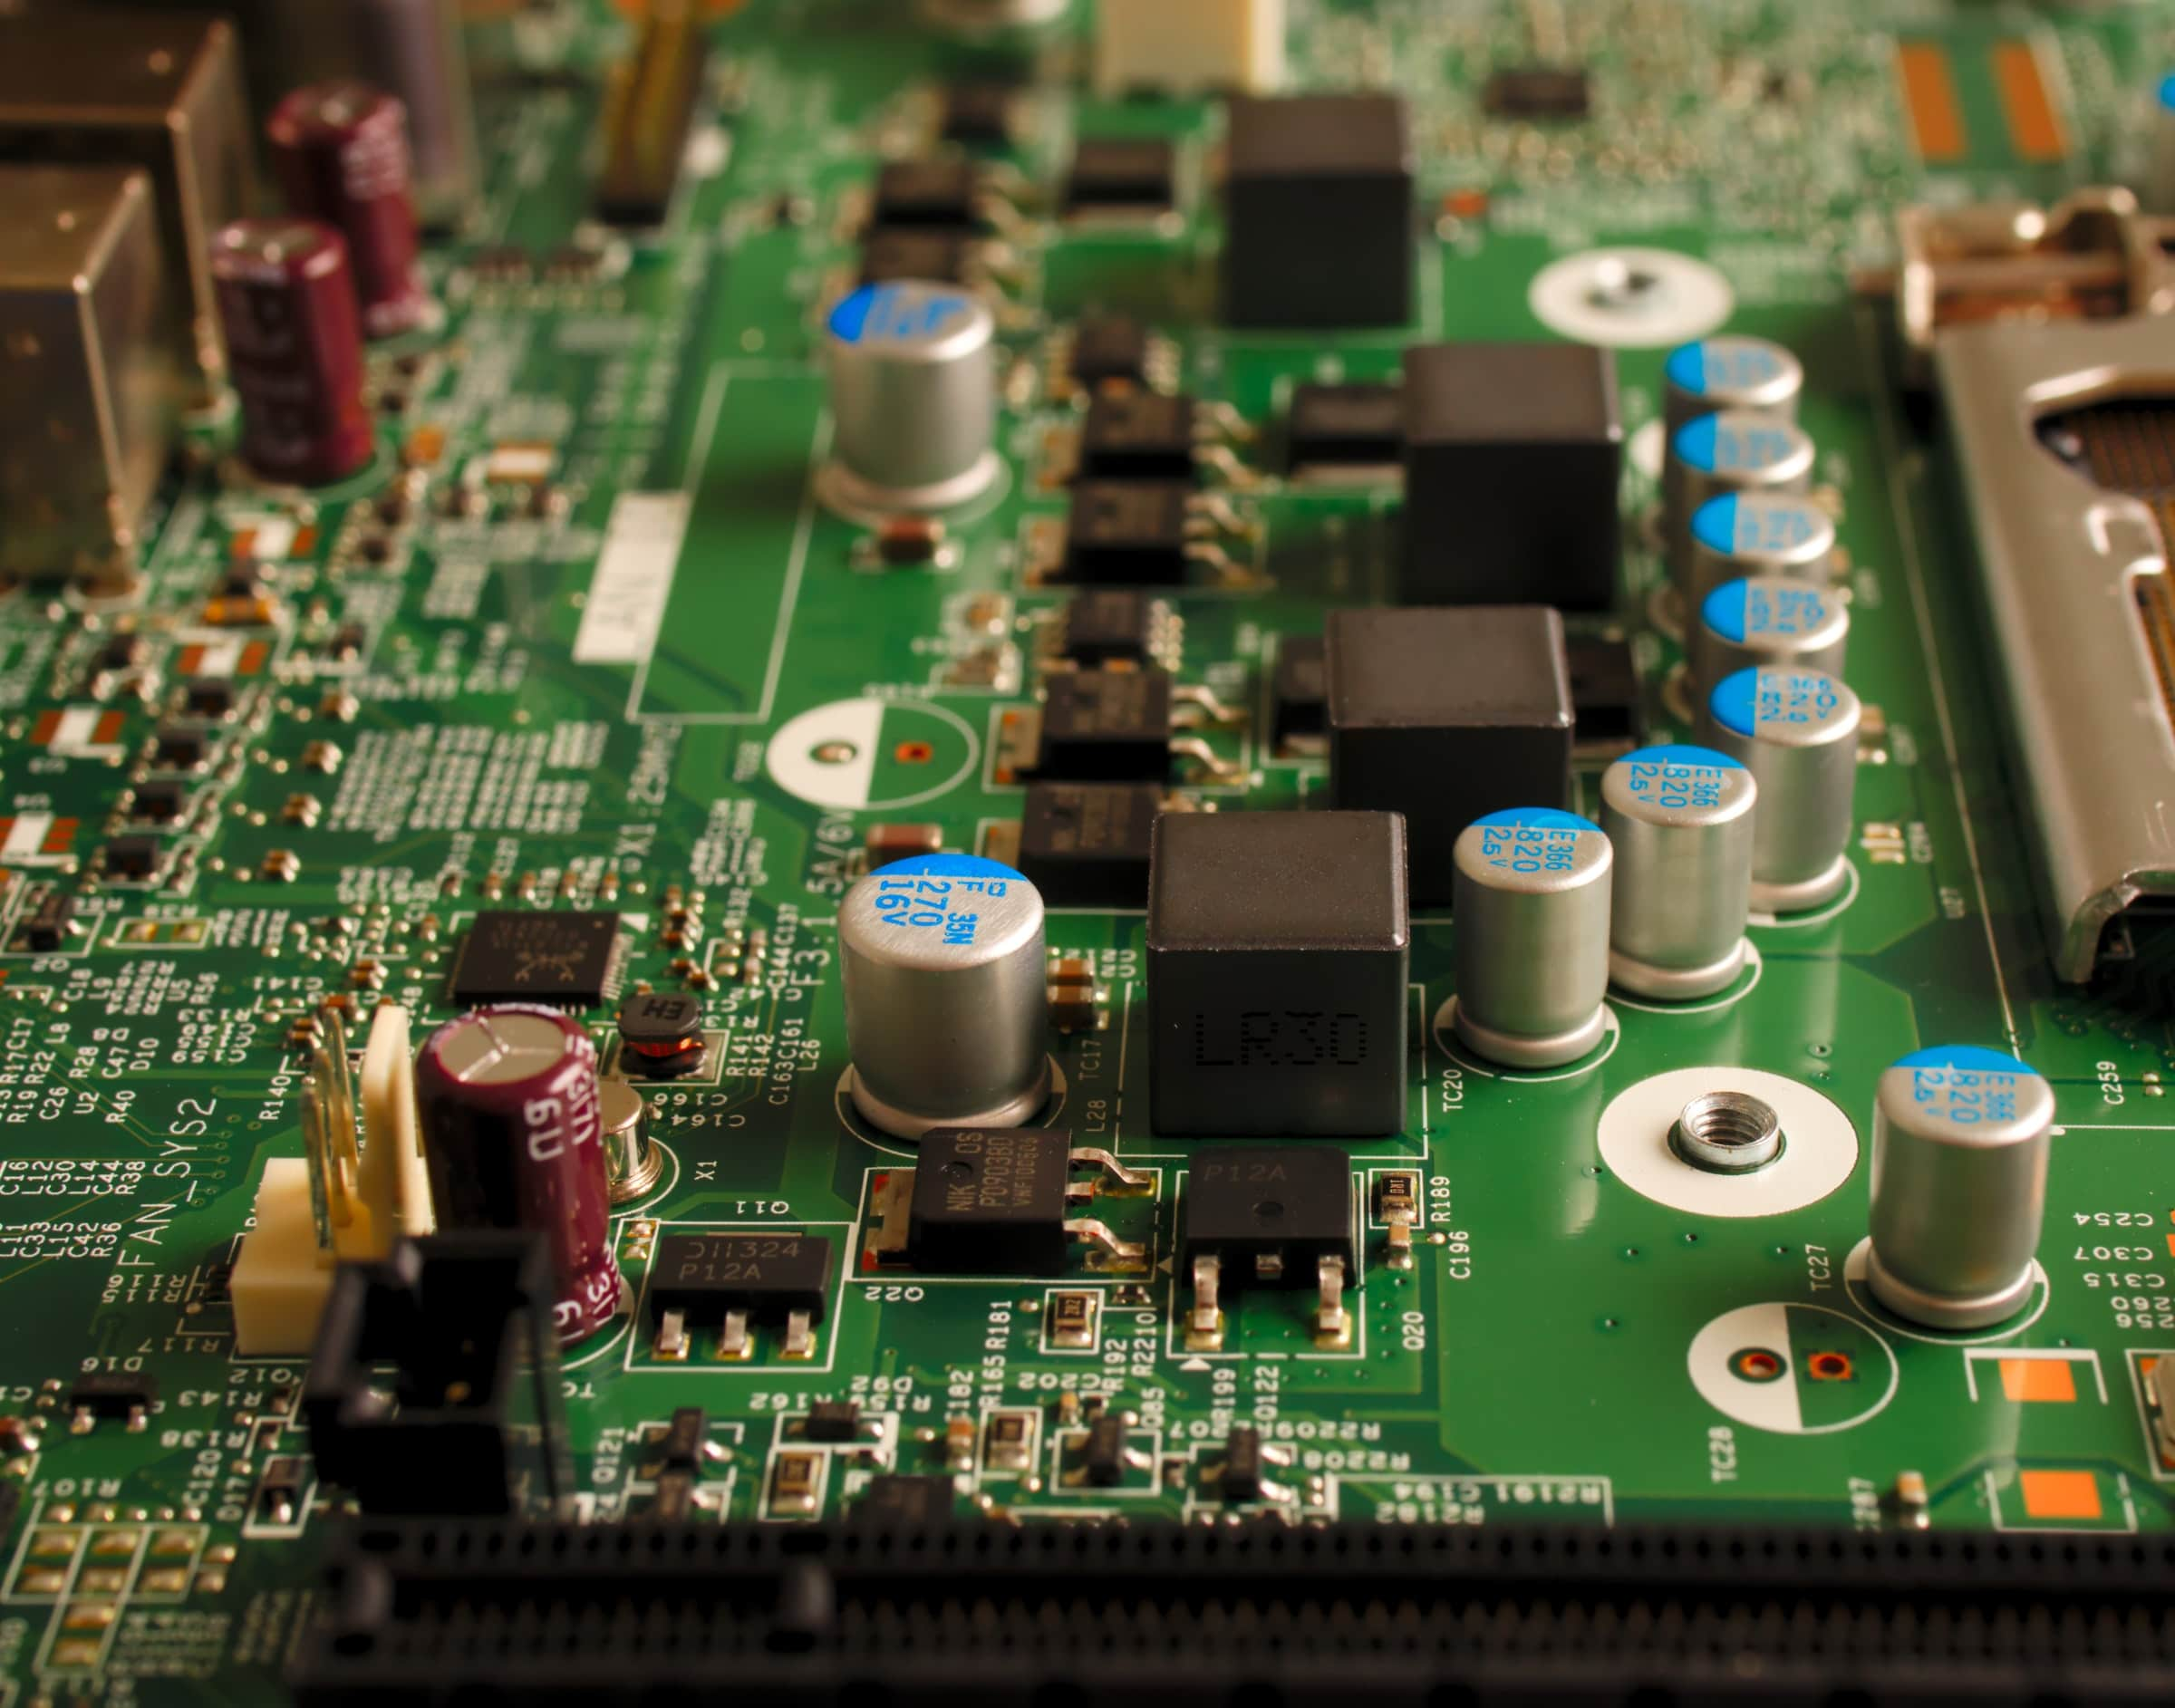 Don't Waste Solutions for E-Waste